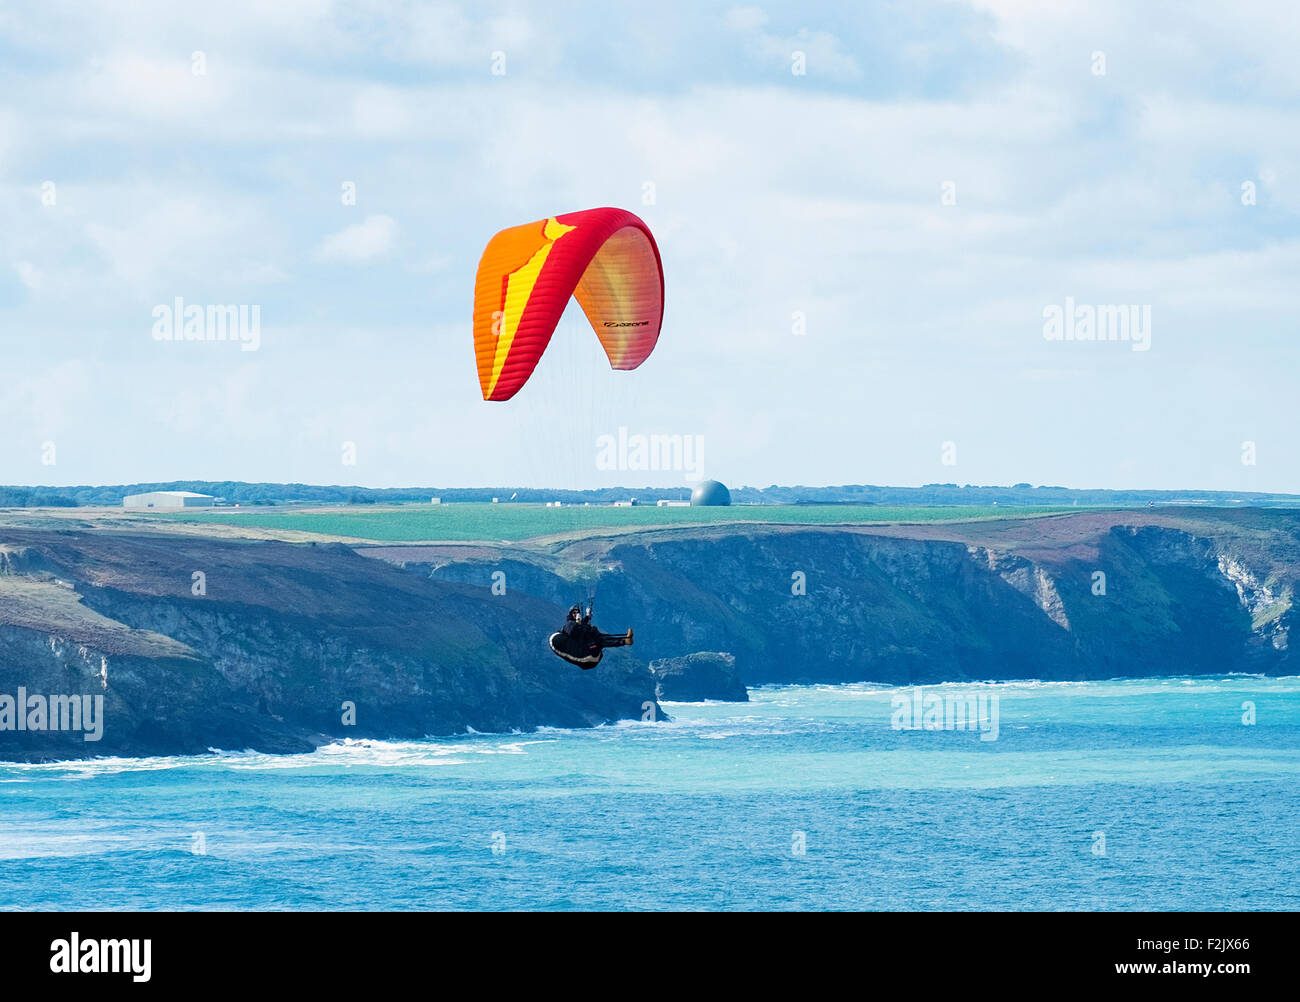 a paraglider gliding over the sea at st.agnes head on the coast of cornwall, england, uk - Stock Image